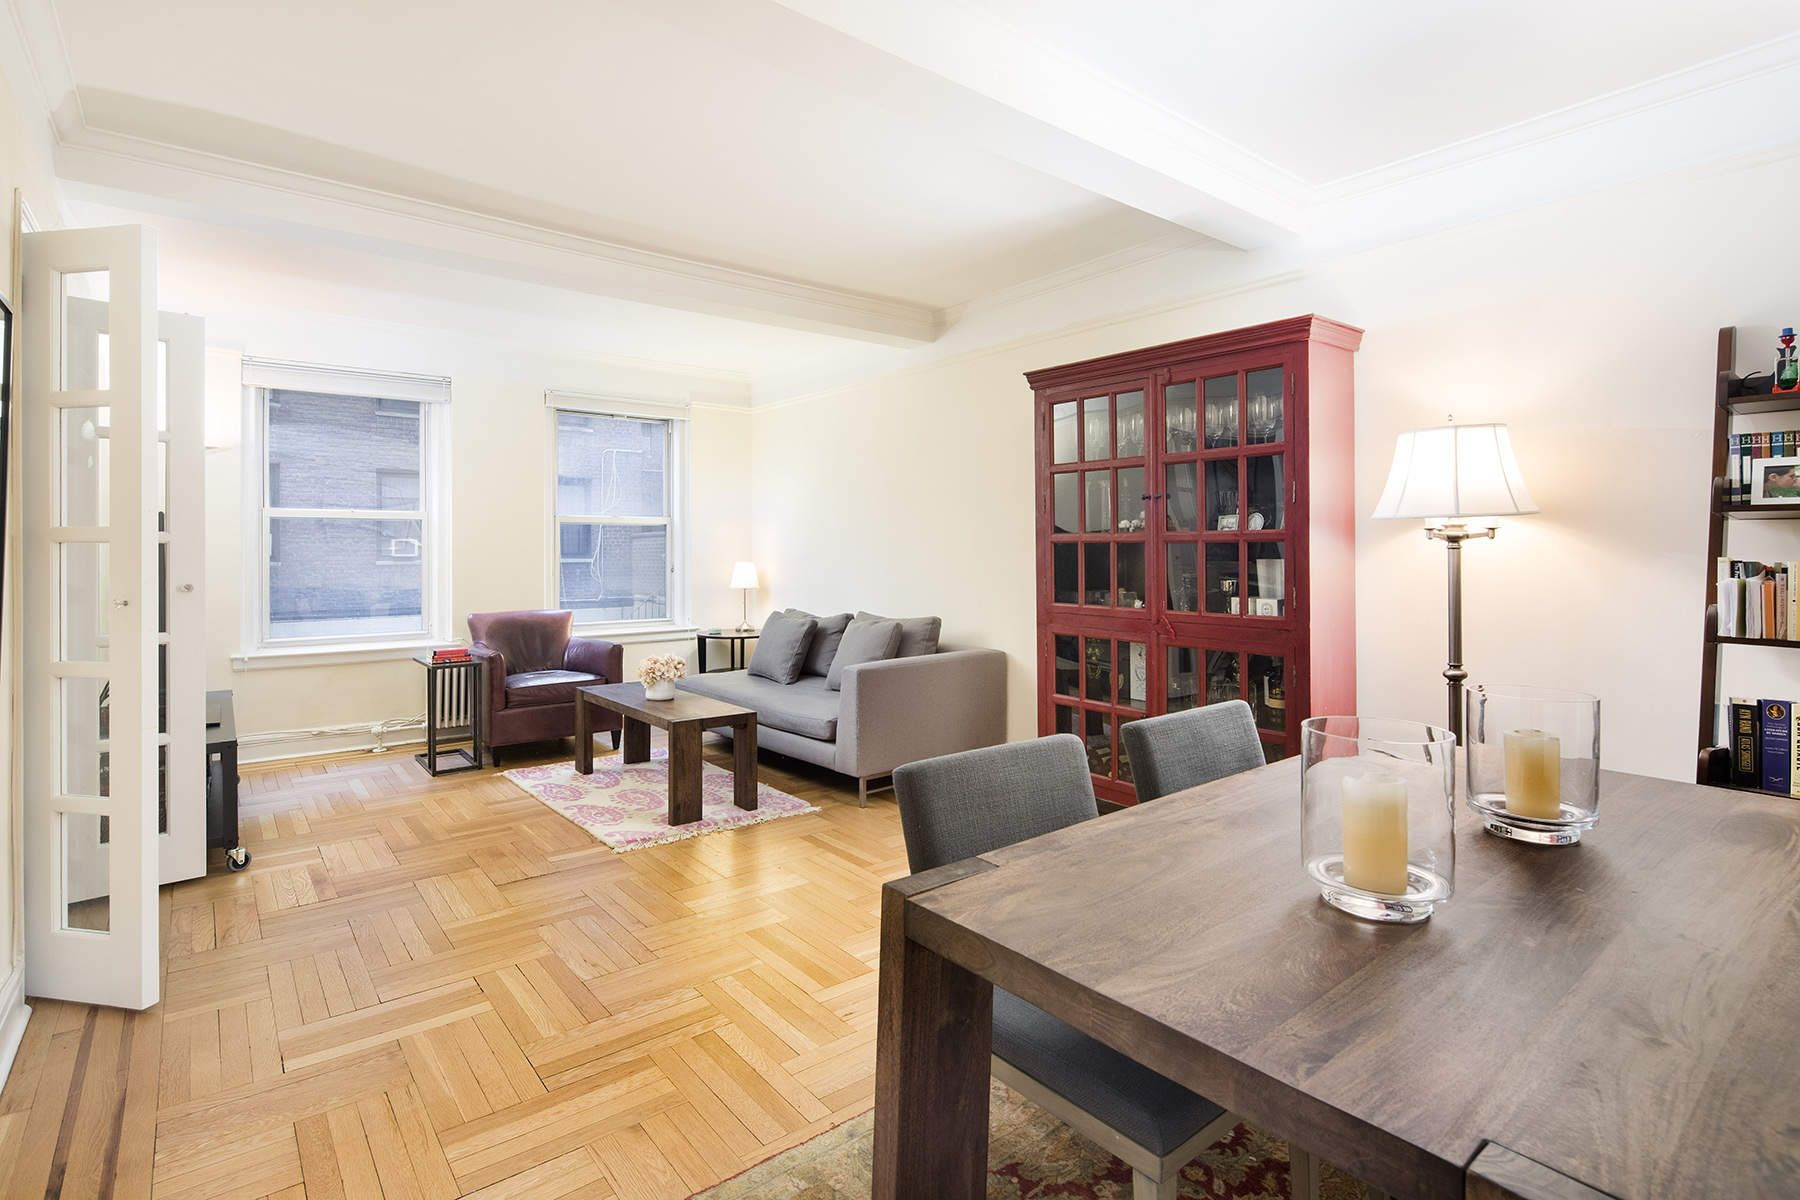 Co-op for Sale at 325 East 79th Street, 2D 325 East 79th Street Apt 2D New York, New York 10075 United States